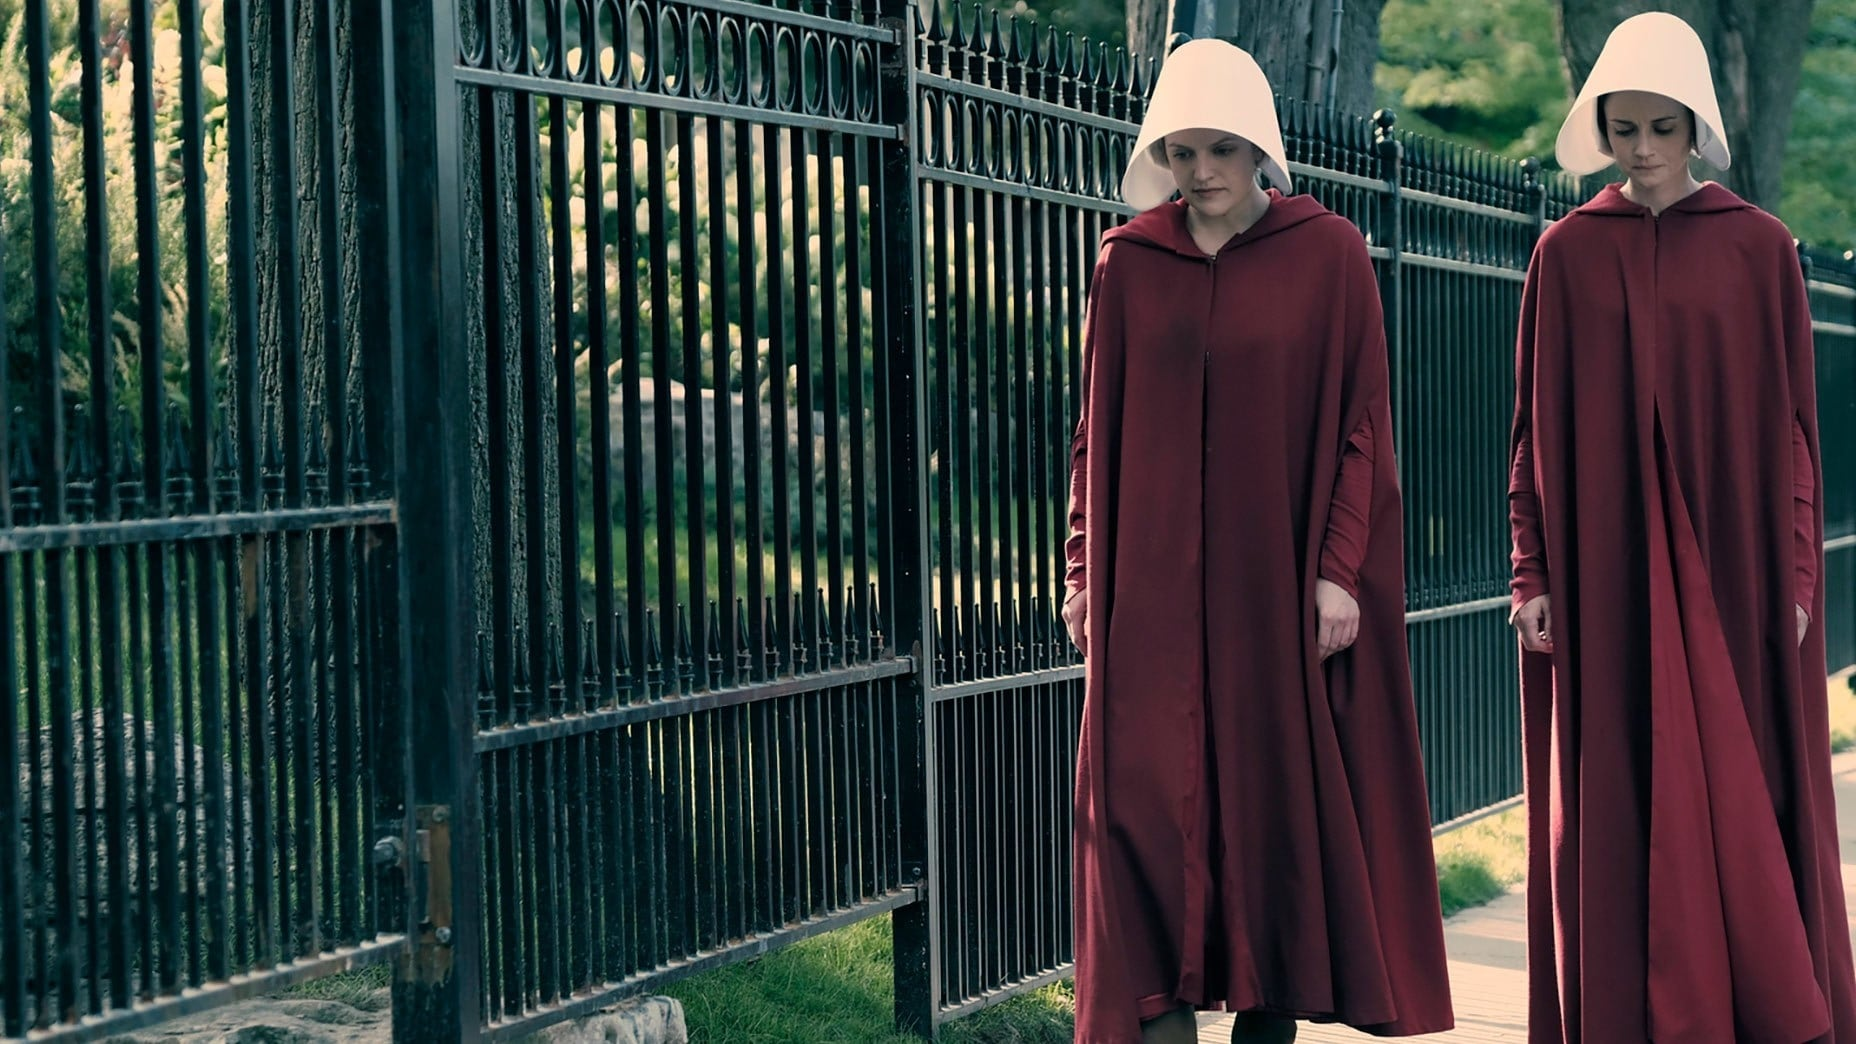 The Handmaid's Tale Season 2 Episode 5 : Seeds